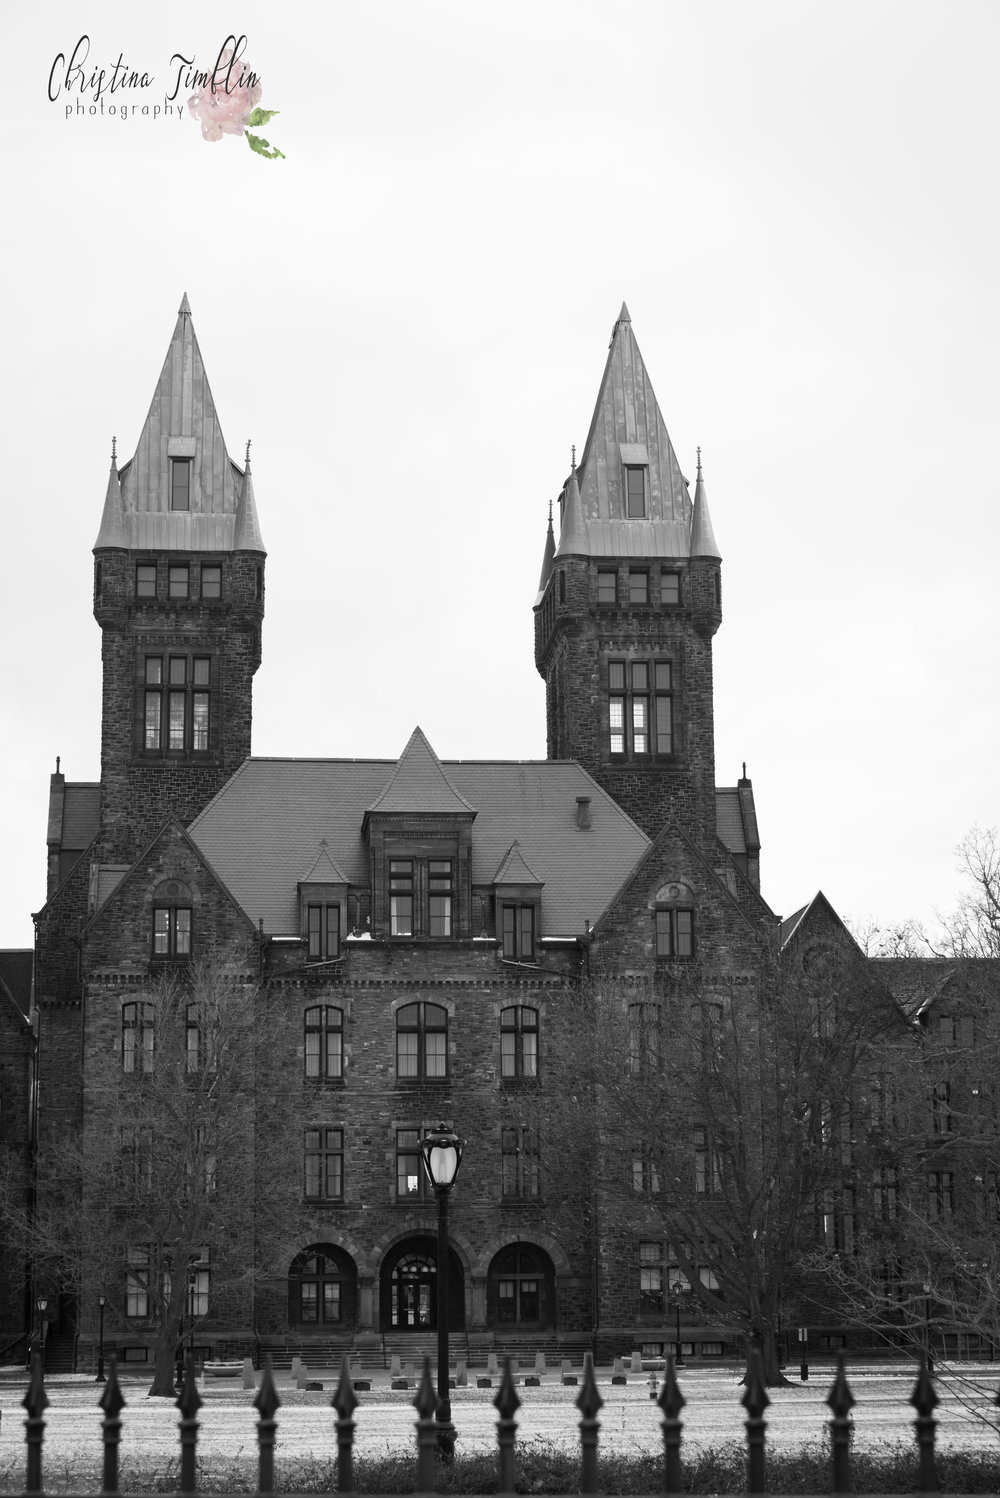 This is the beautiful and massive Richardson Olmsted Complex. I actually took this photo a few months ago. Originally it was the Buffalo State Asylum for the Insane. Built in 1872, it's one of just 2,500 National Historic Landmarks in the country. It's now home to Hotel Henry restaurant and hotel. I had the chance to see the building this past summer and it was very spooky and interesting. If you haven't been, I highly suggest going and checking it out. Spend an hour and walk around, have a drink at the bar, and just appreciate the incredible architecture and history right here in our hometown!